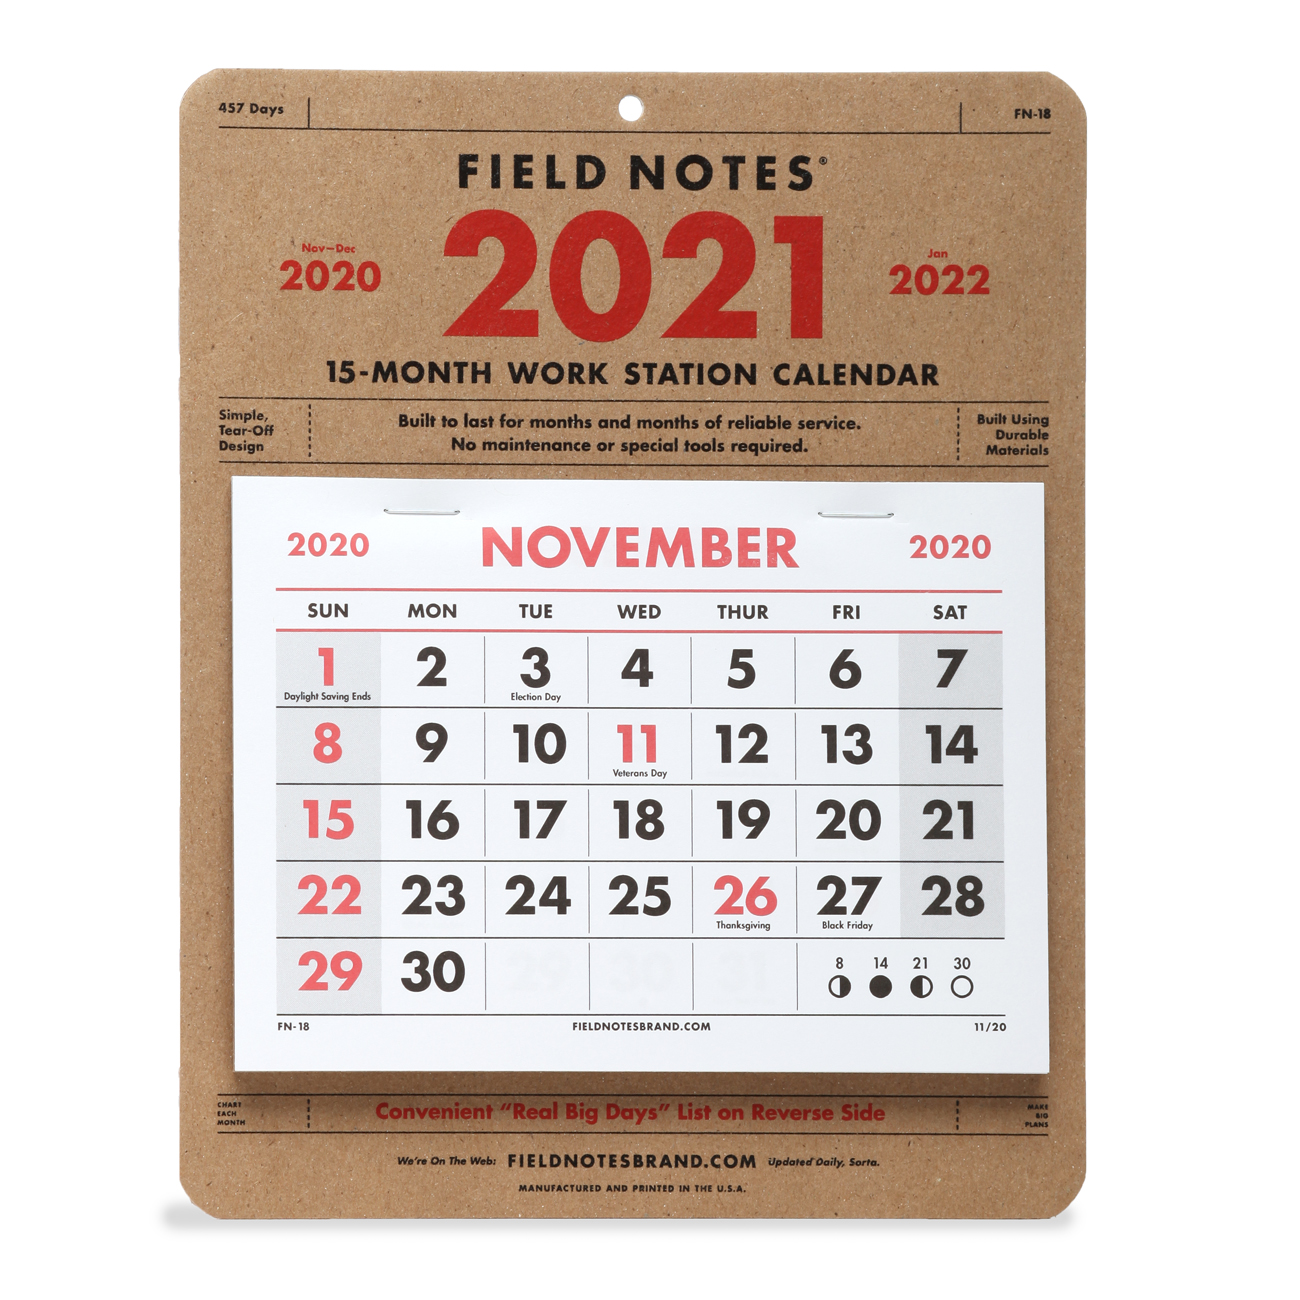 Field Notes, 2021 Work Station Calendar, Front